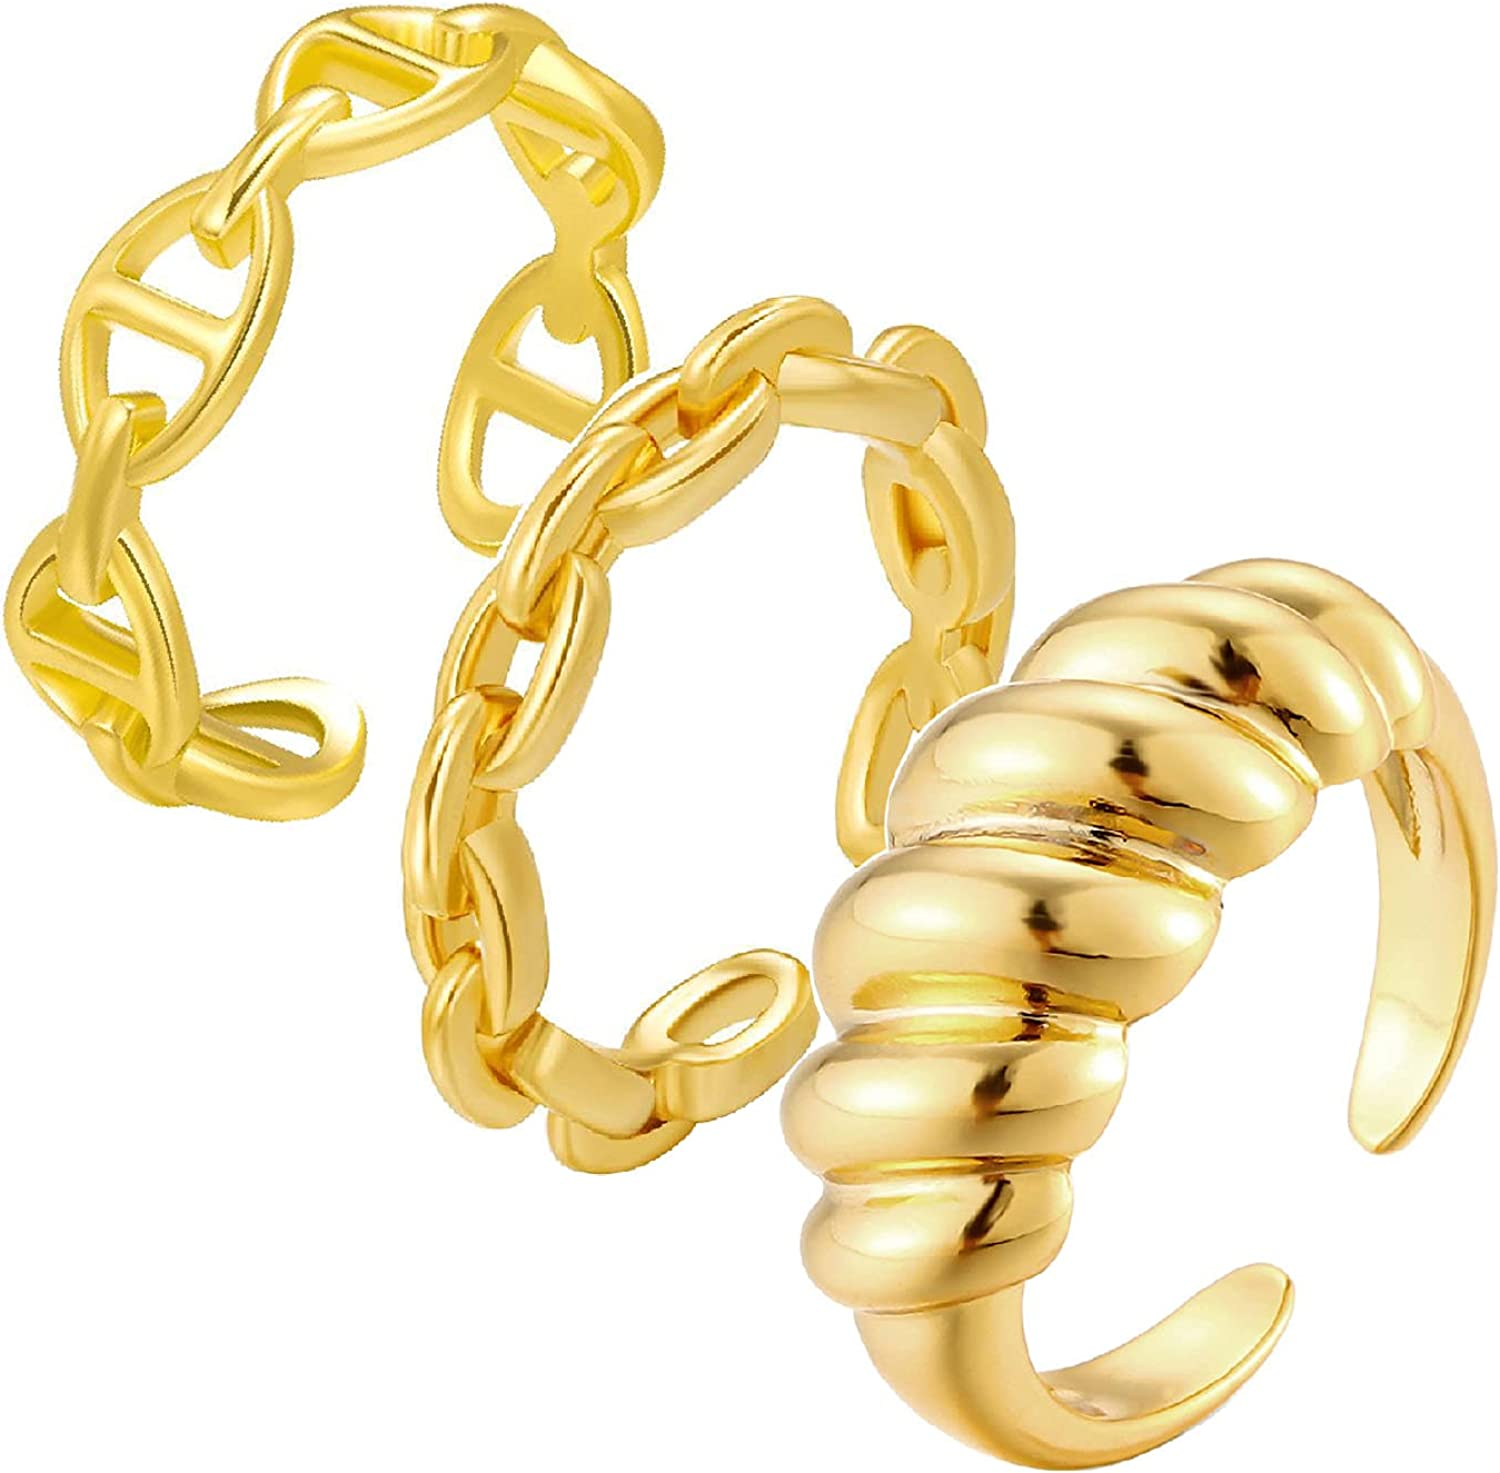 3Pcs 18K Gold Plated Chain Link Braided Twisted Ring Simple Stacking Band Open Rings for Women Adjustable Stackable Thumb Open Rings Set